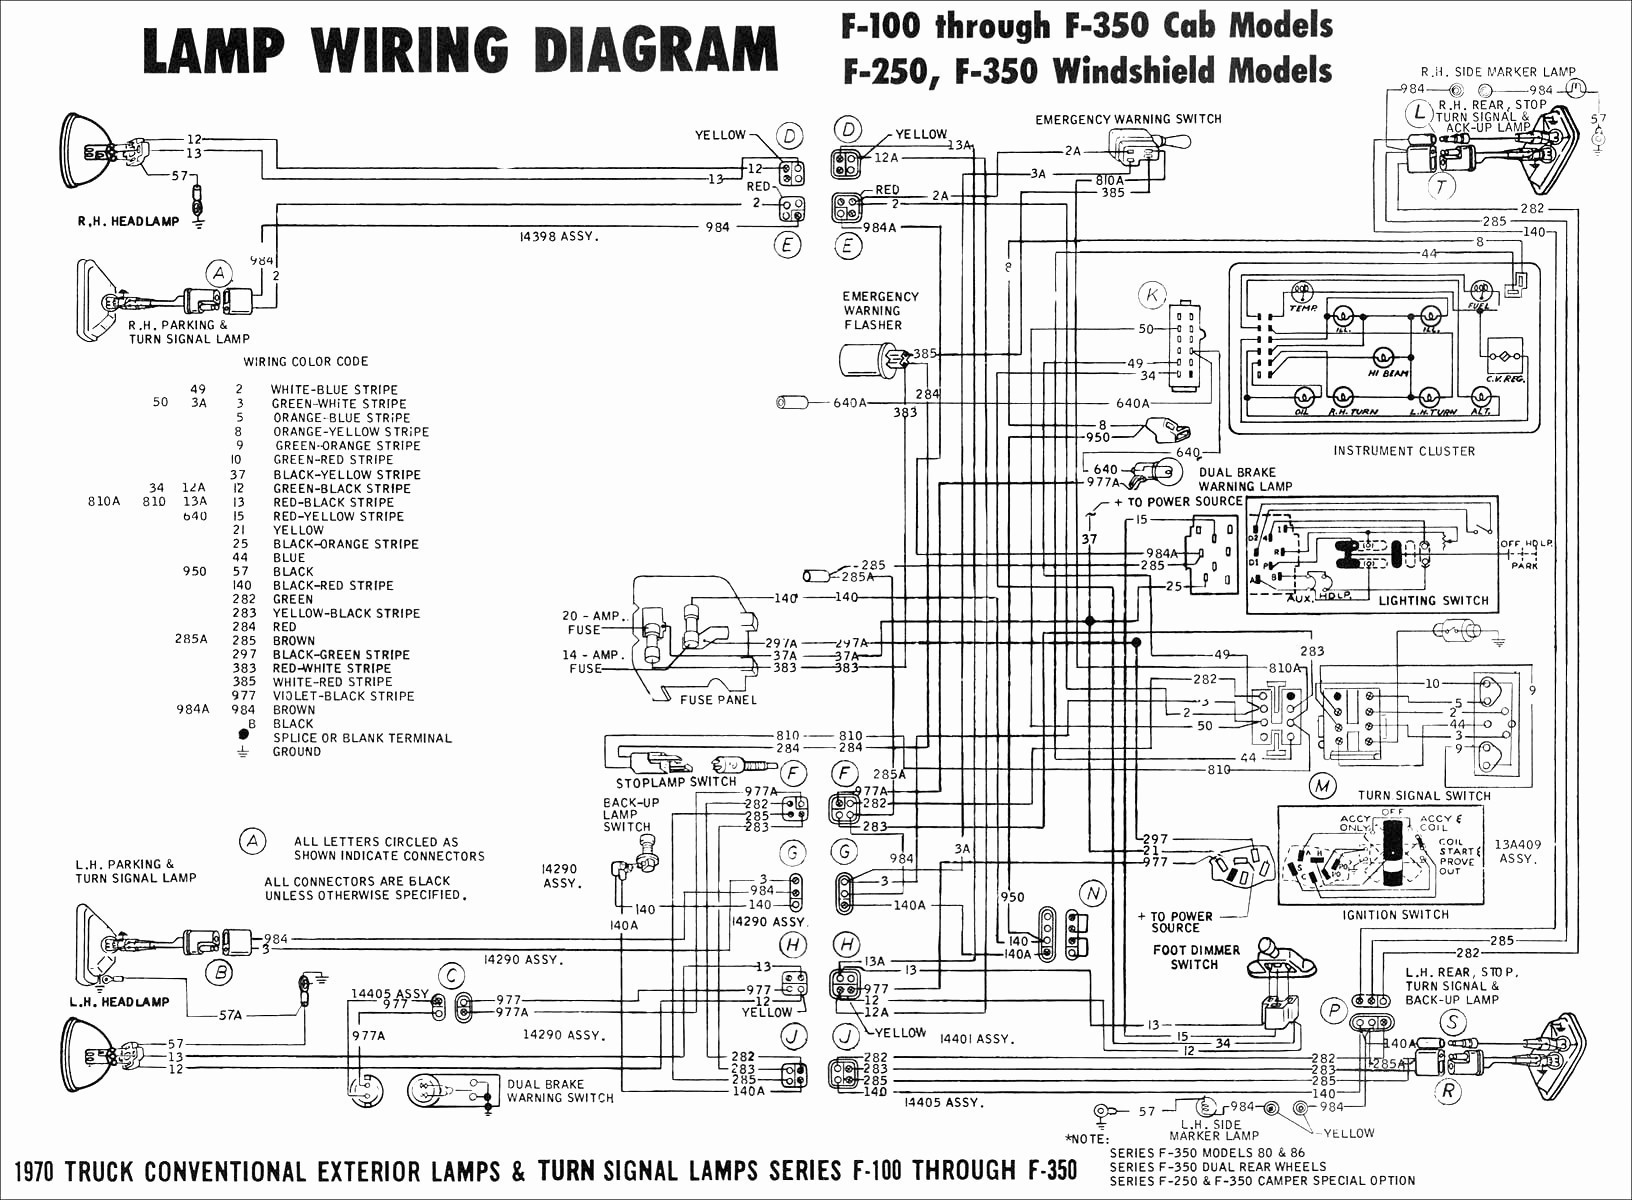 Wiring Diagram for 2014 Jeep Wrangler Taillight Awesome